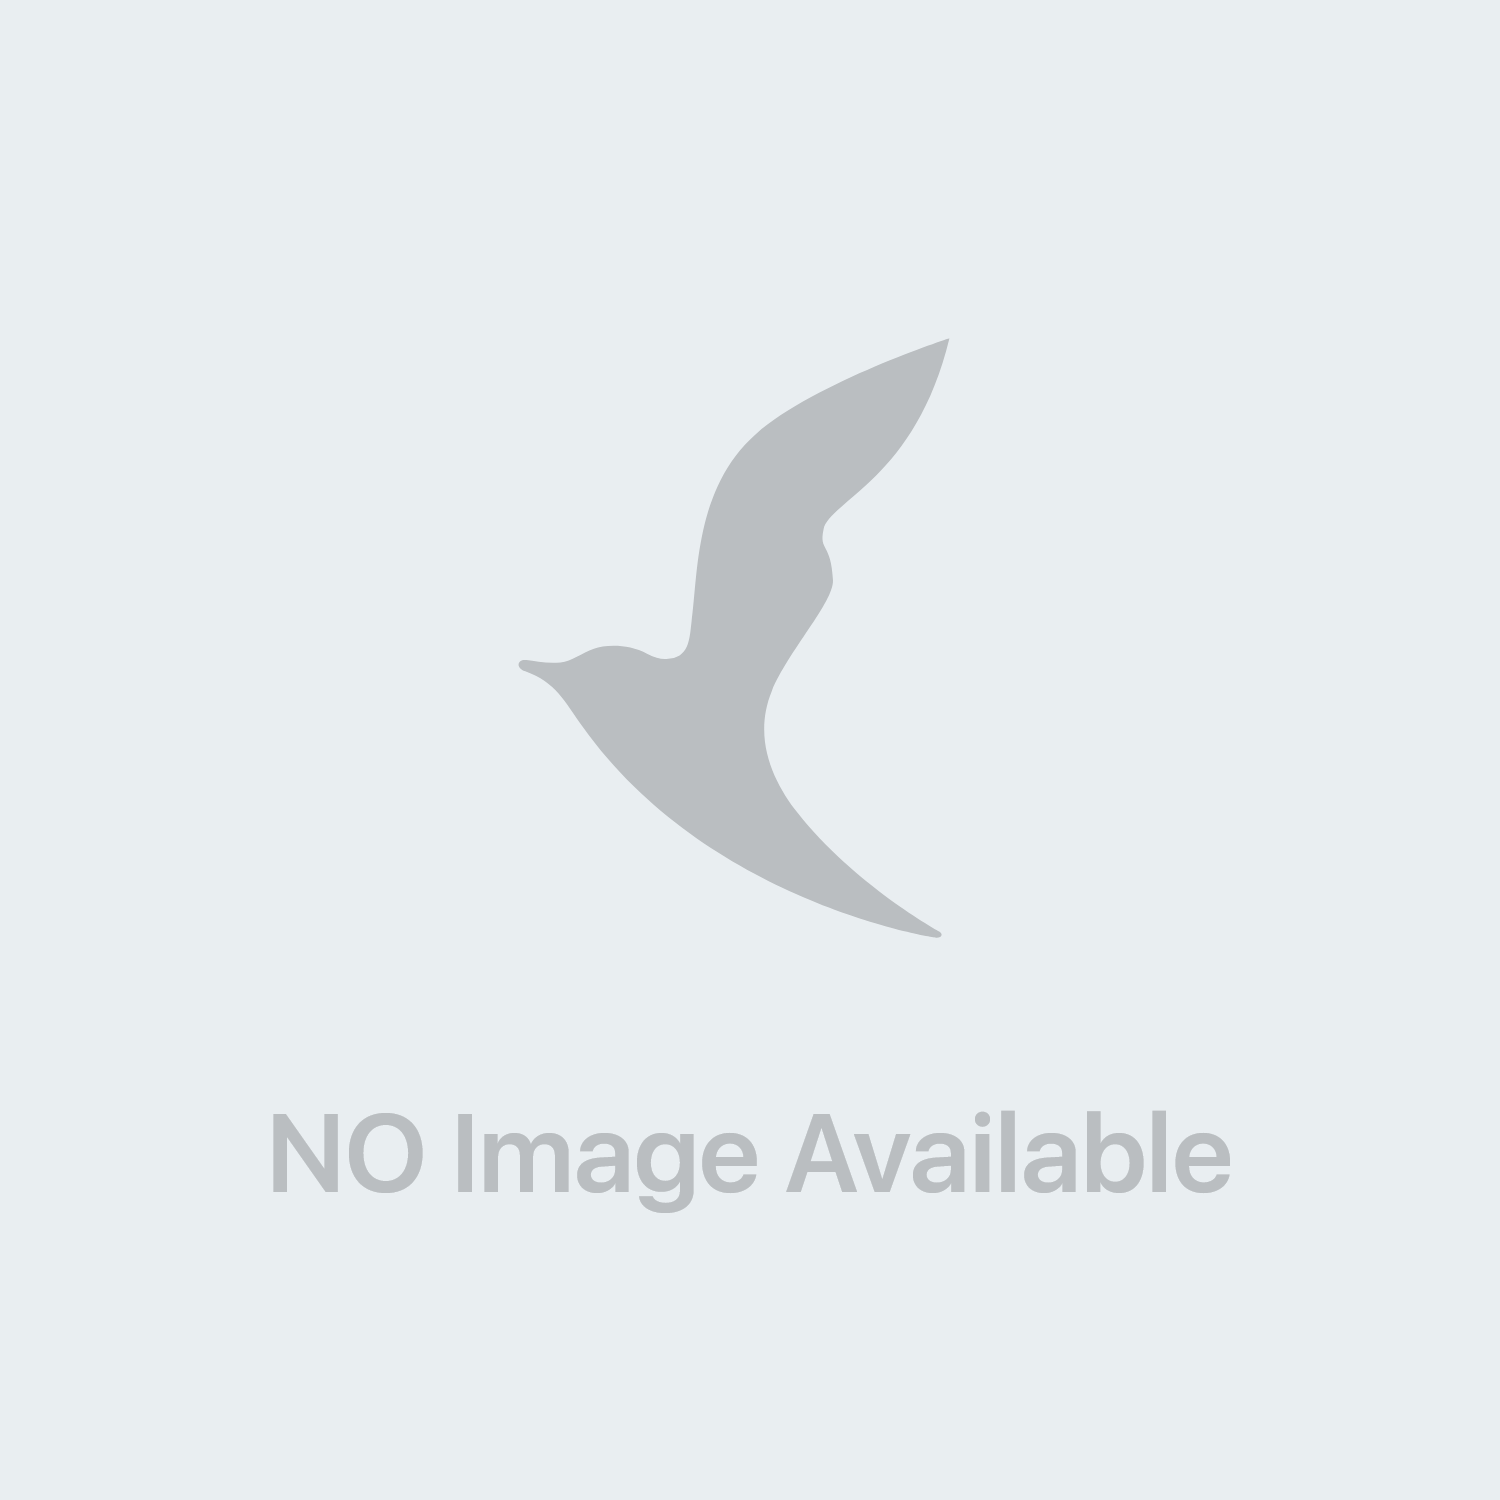 Muciclar Sciroppo 200 ml 15 mg/5 ml